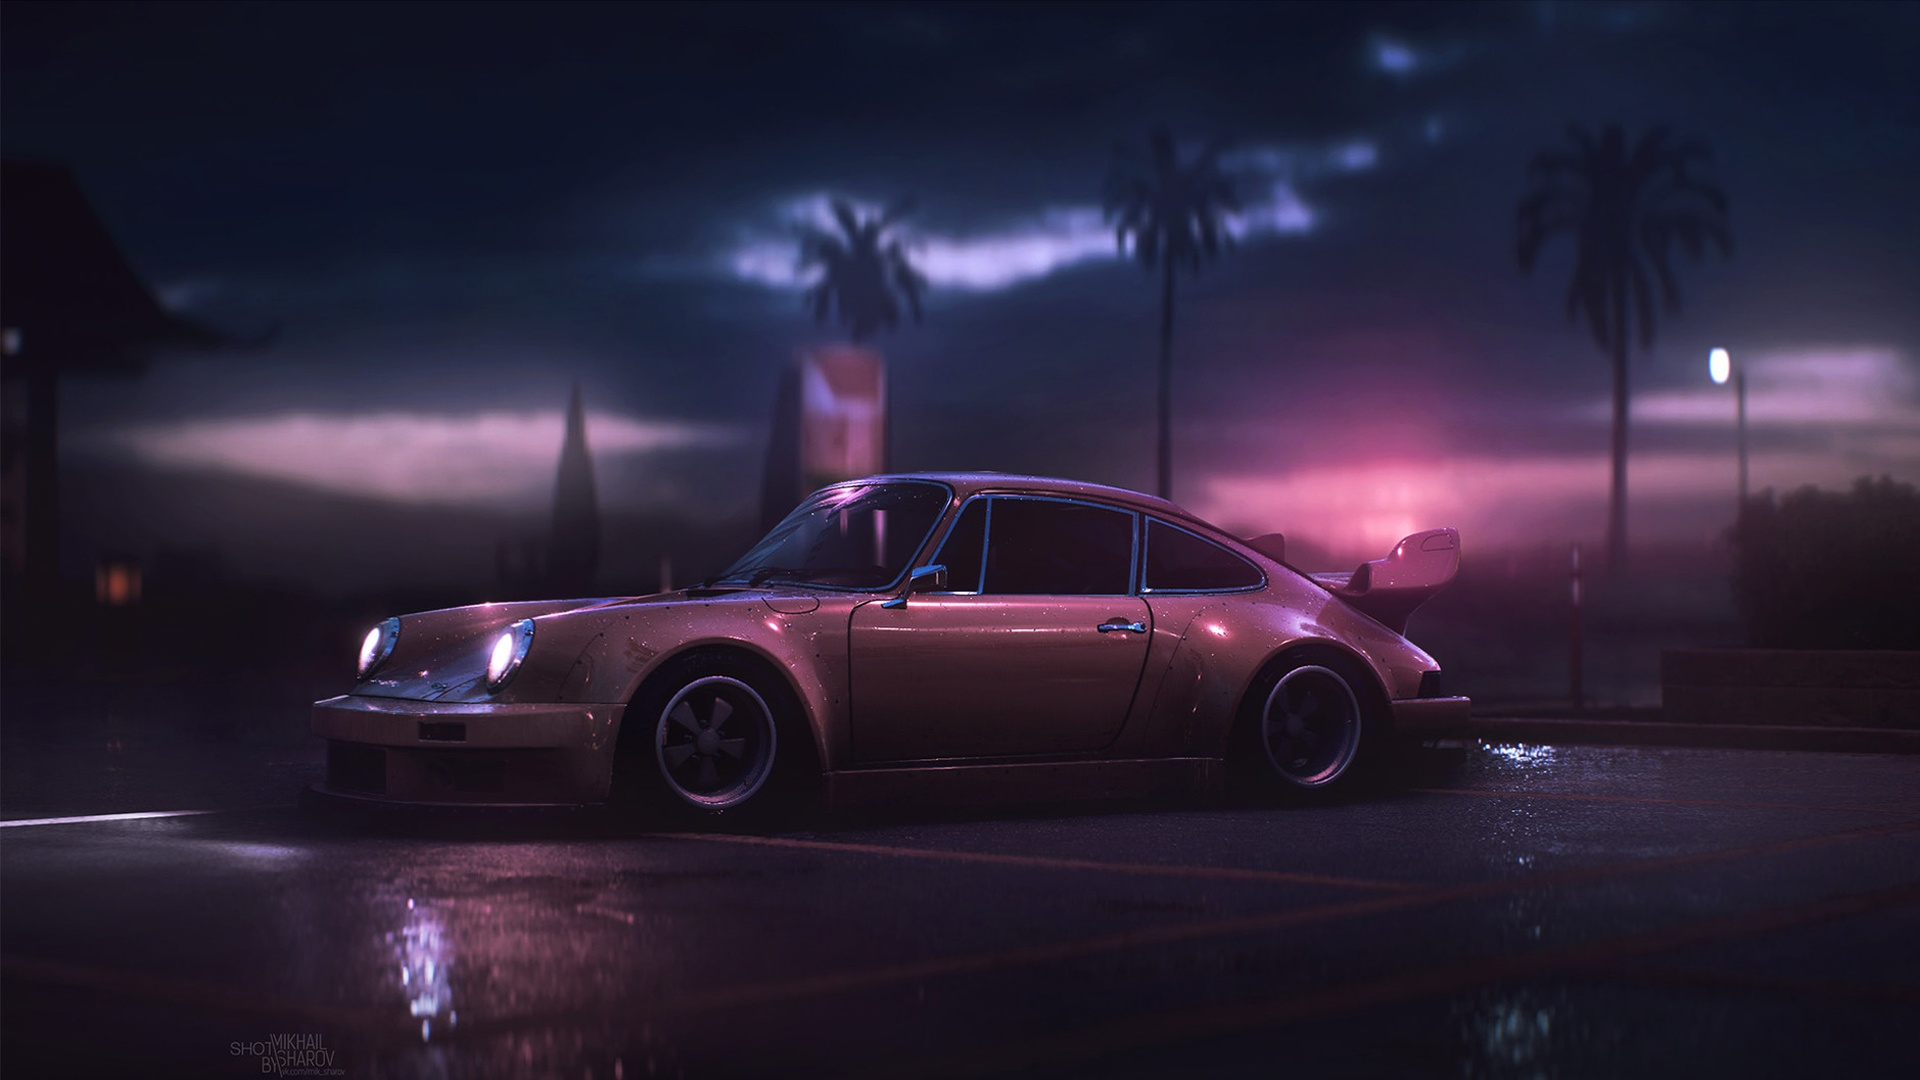 Need For Speed World Cars Wallpaper Old Porsche 911 Hd Cars 4k Wallpapers Images